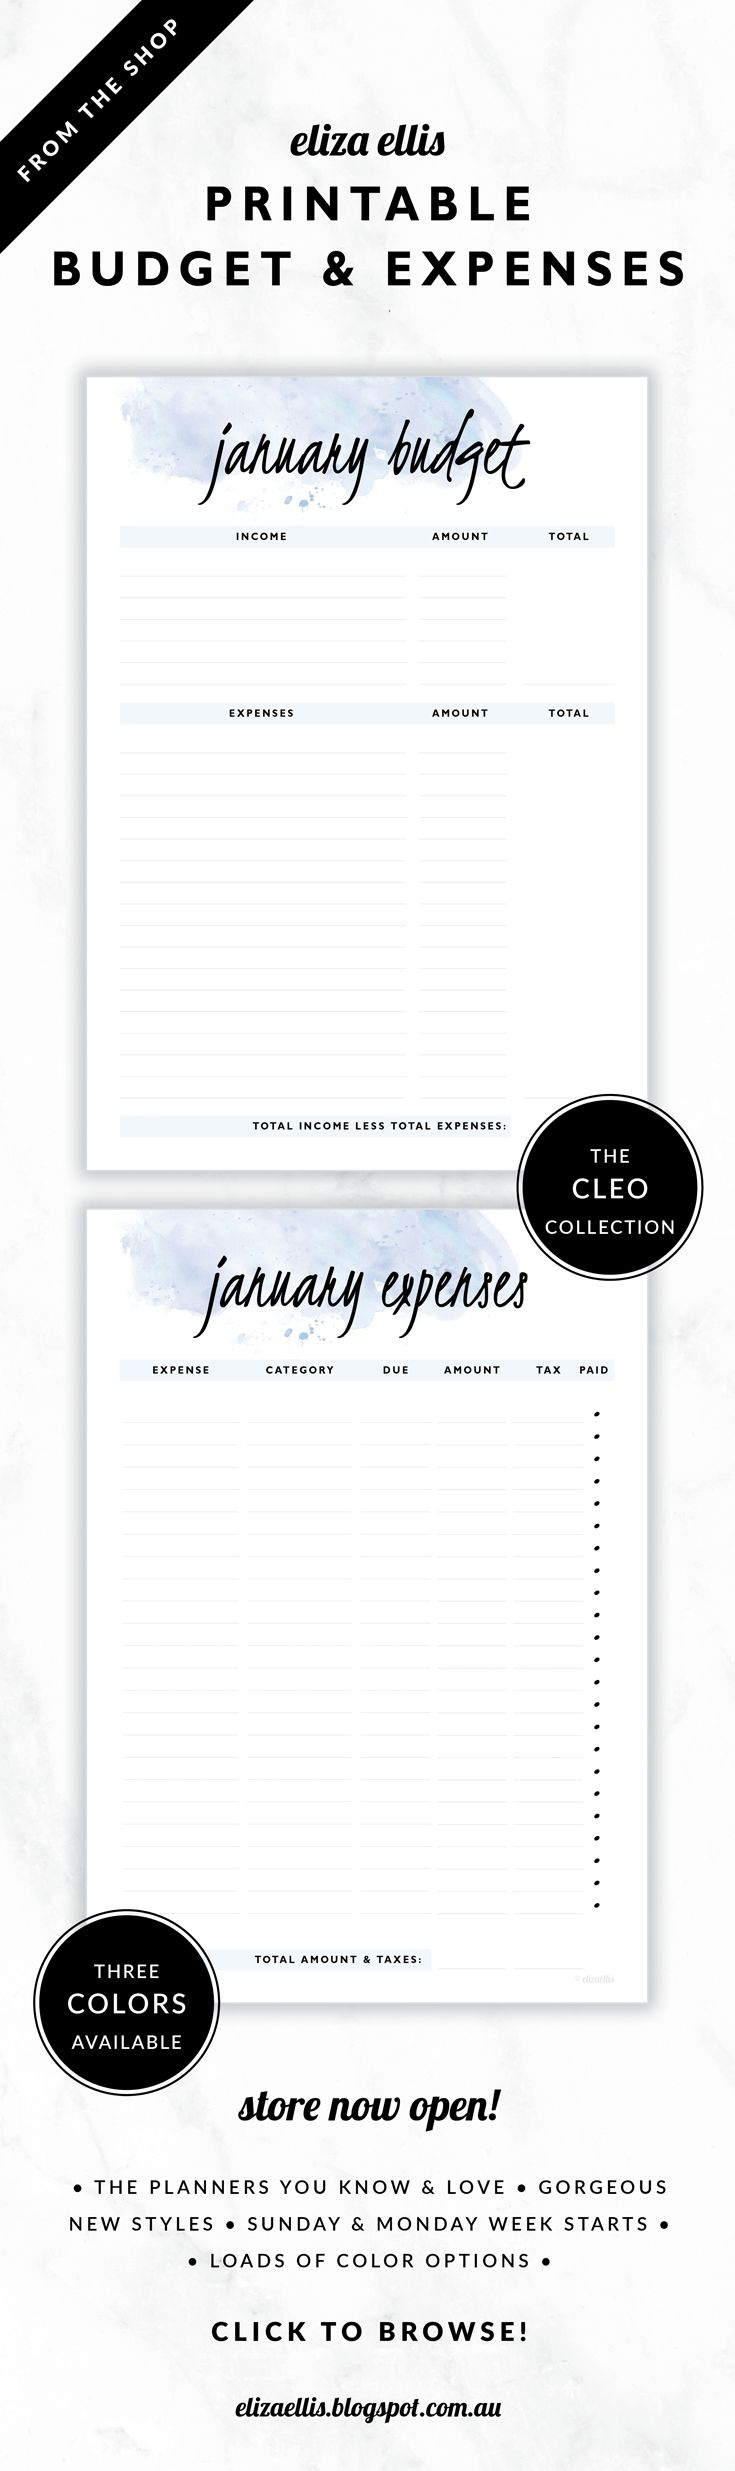 printable monthly budget and expenses financial planners the cleo collection by eliza ellis